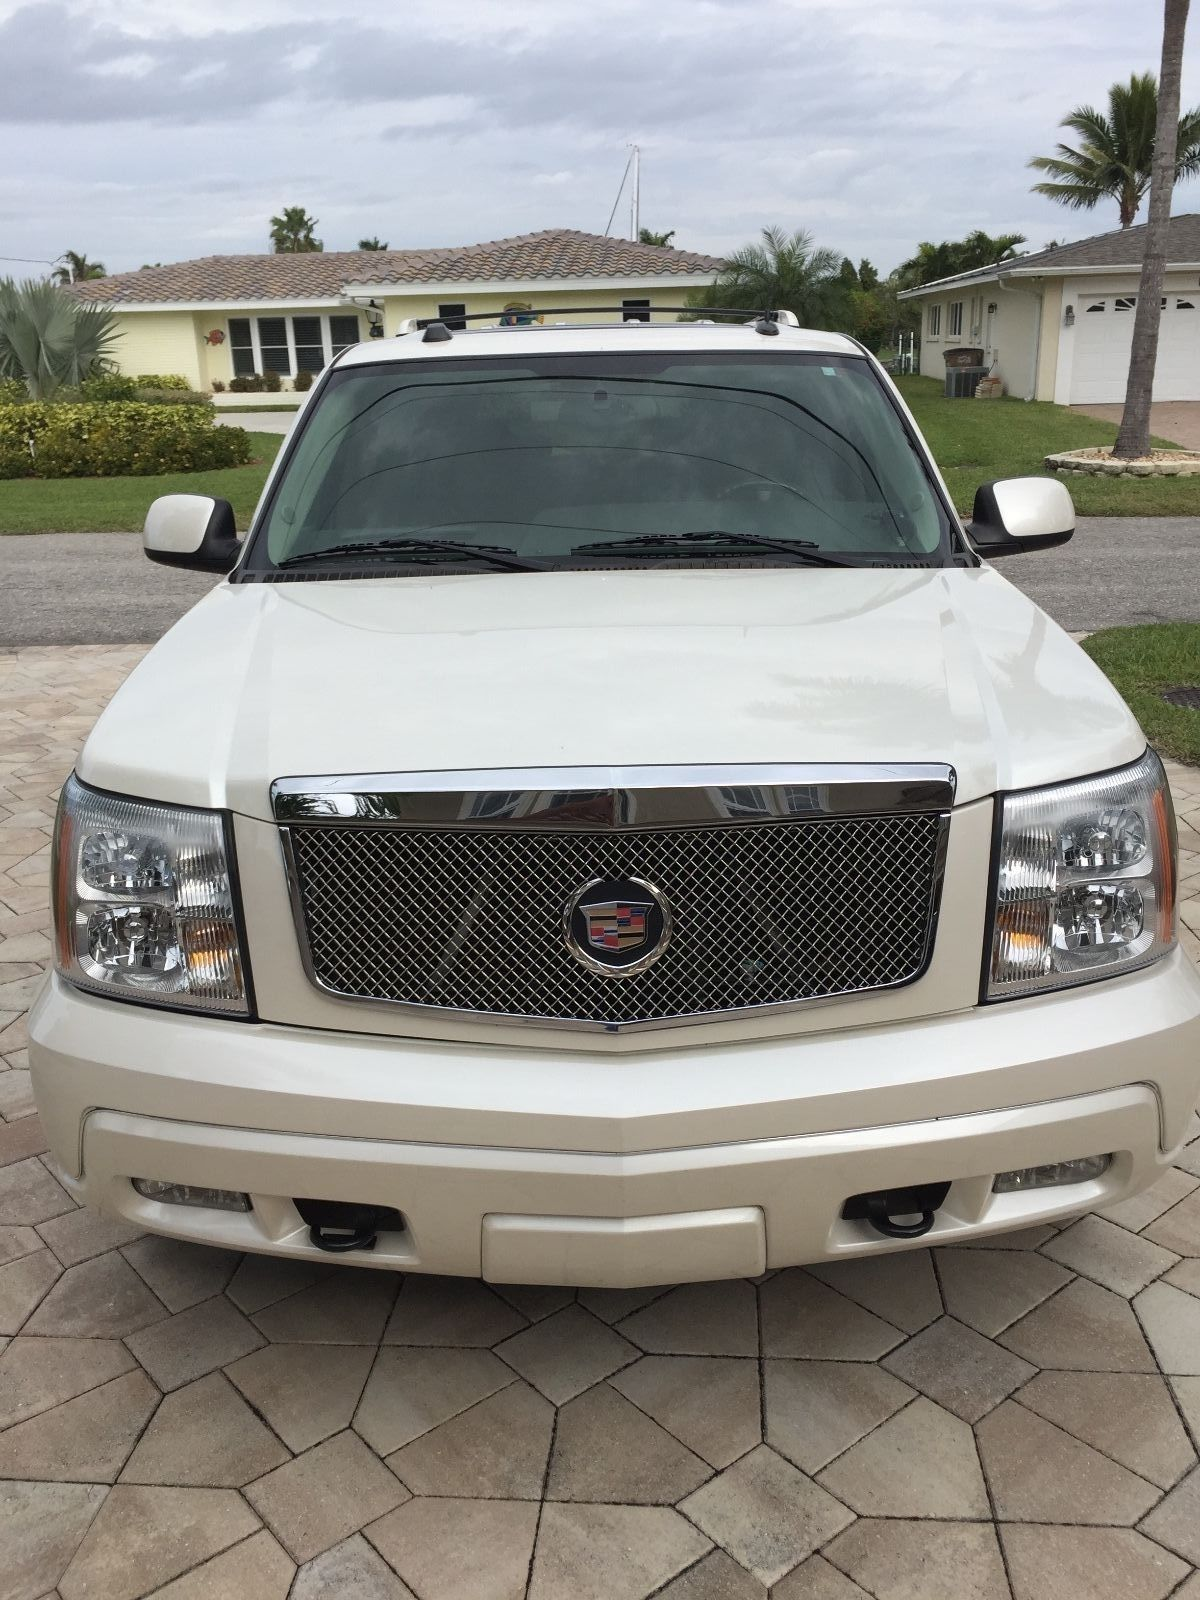 copart sale bfee for l cadillac carfinder cert salvage escalade view left online white auto az of phoenix on en in title auctions lot